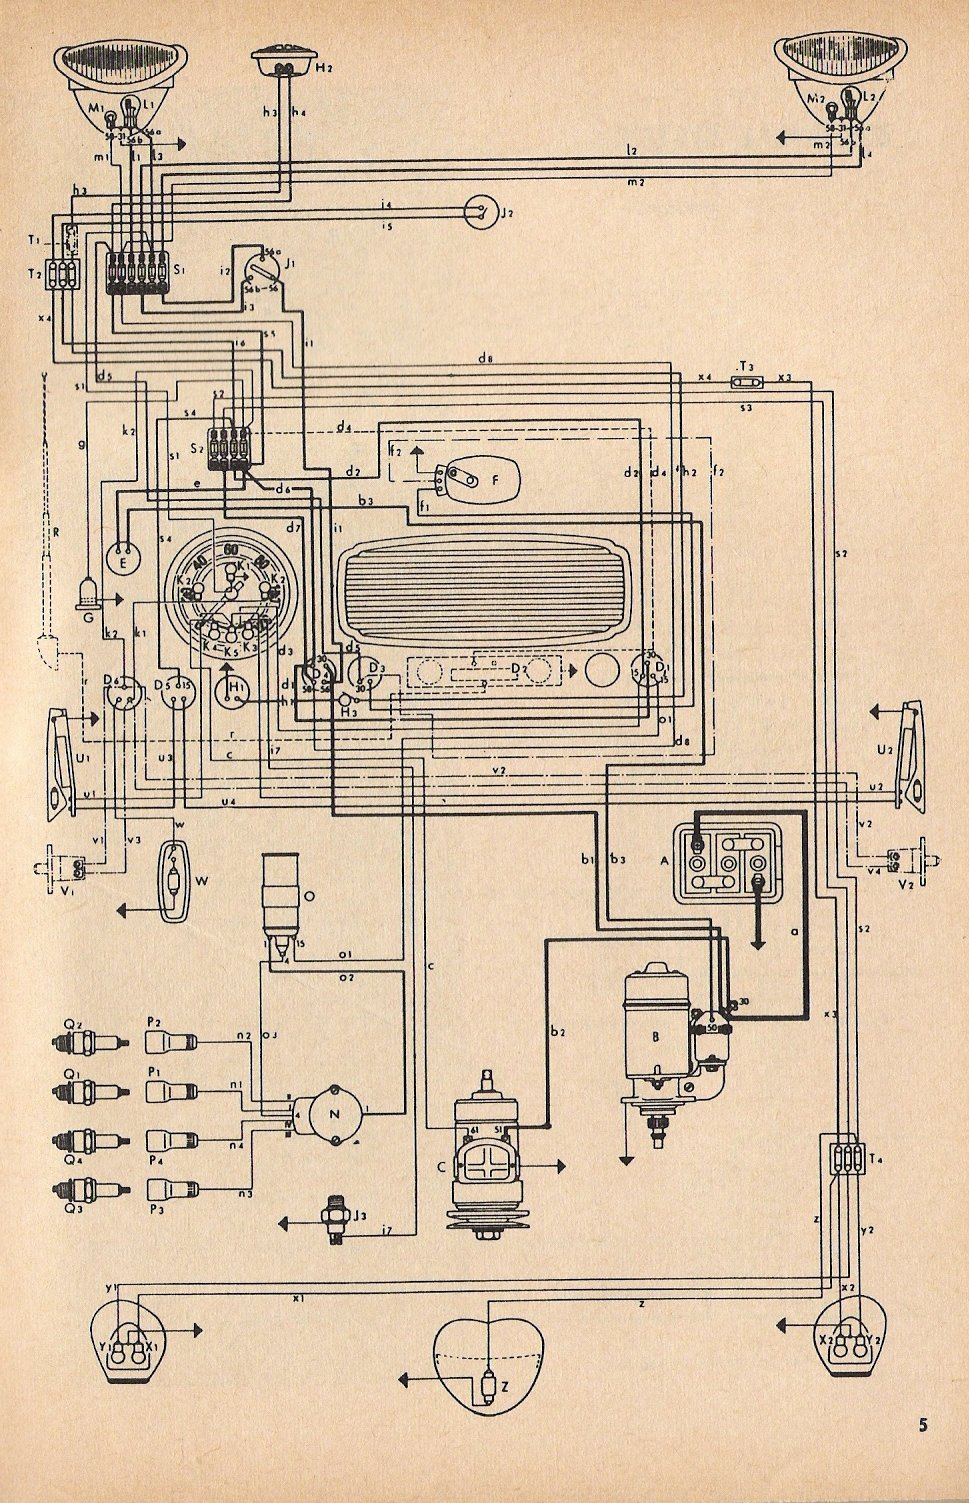 66 Vw Wiring Diagram 1300 Data Schematics Oset Thesamba Com Type 1 Diagrams Rh 1962 Relay